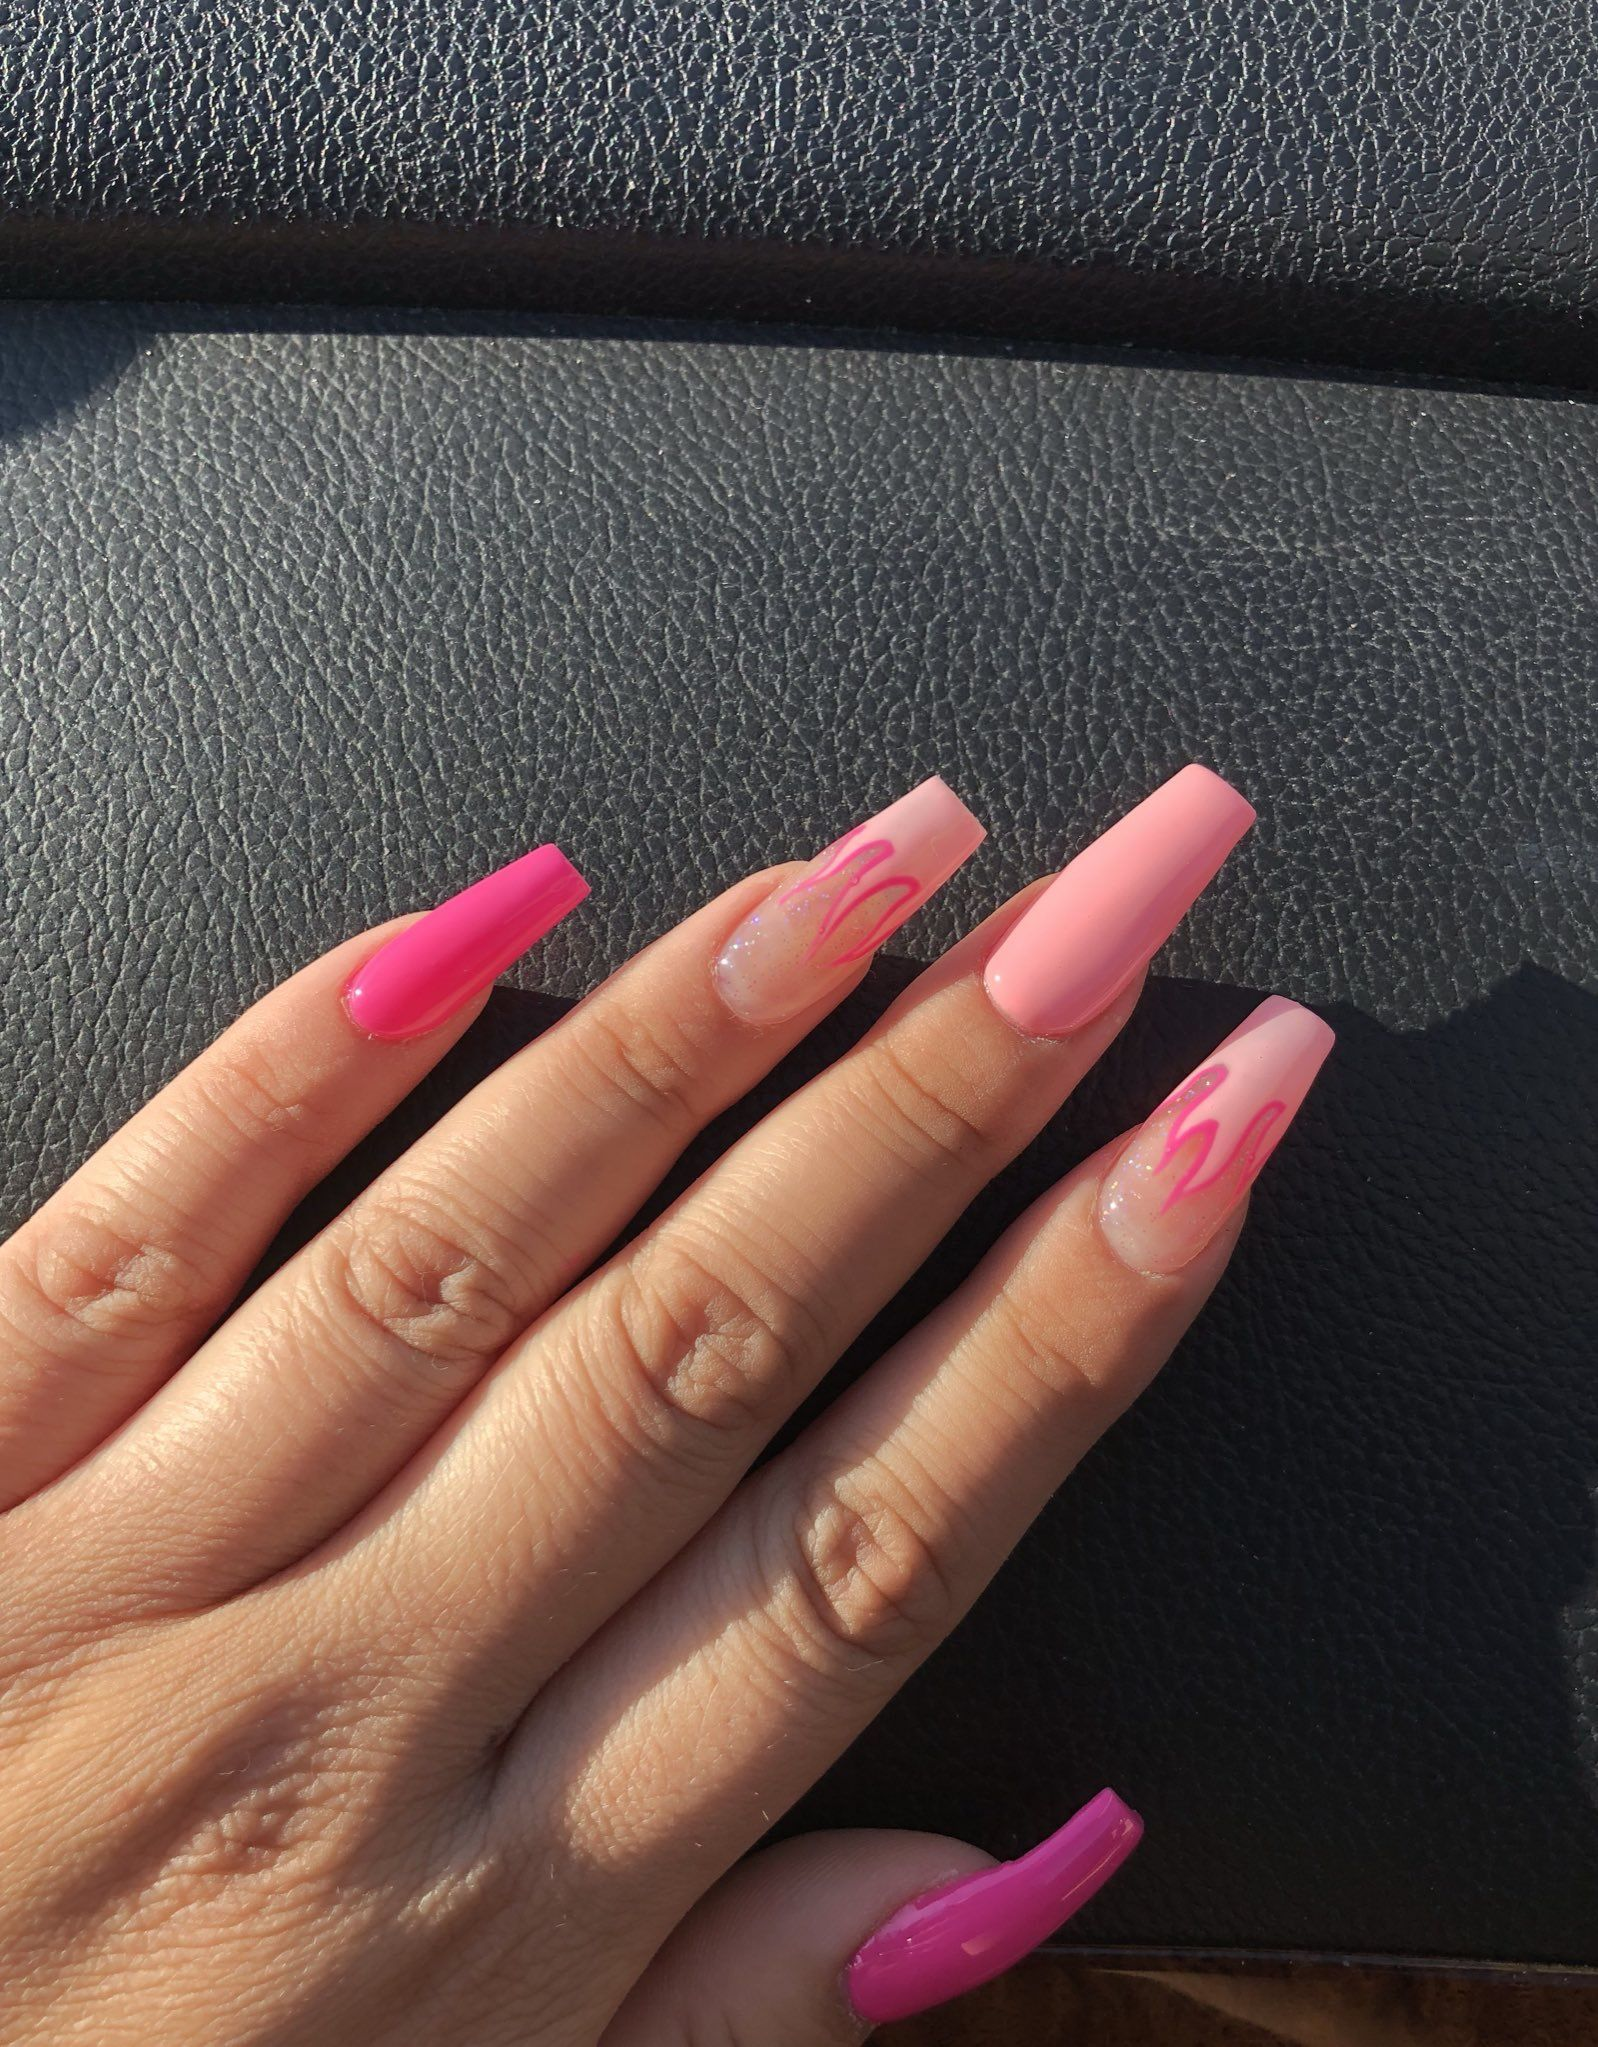 Follow Saltteaa For More Fabulous Pins Aesthetic Acrylic Nails Acrylic Aesthetic Aesthe In 2020 Long Square Acrylic Nails Best Acrylic Nails Fire Nails